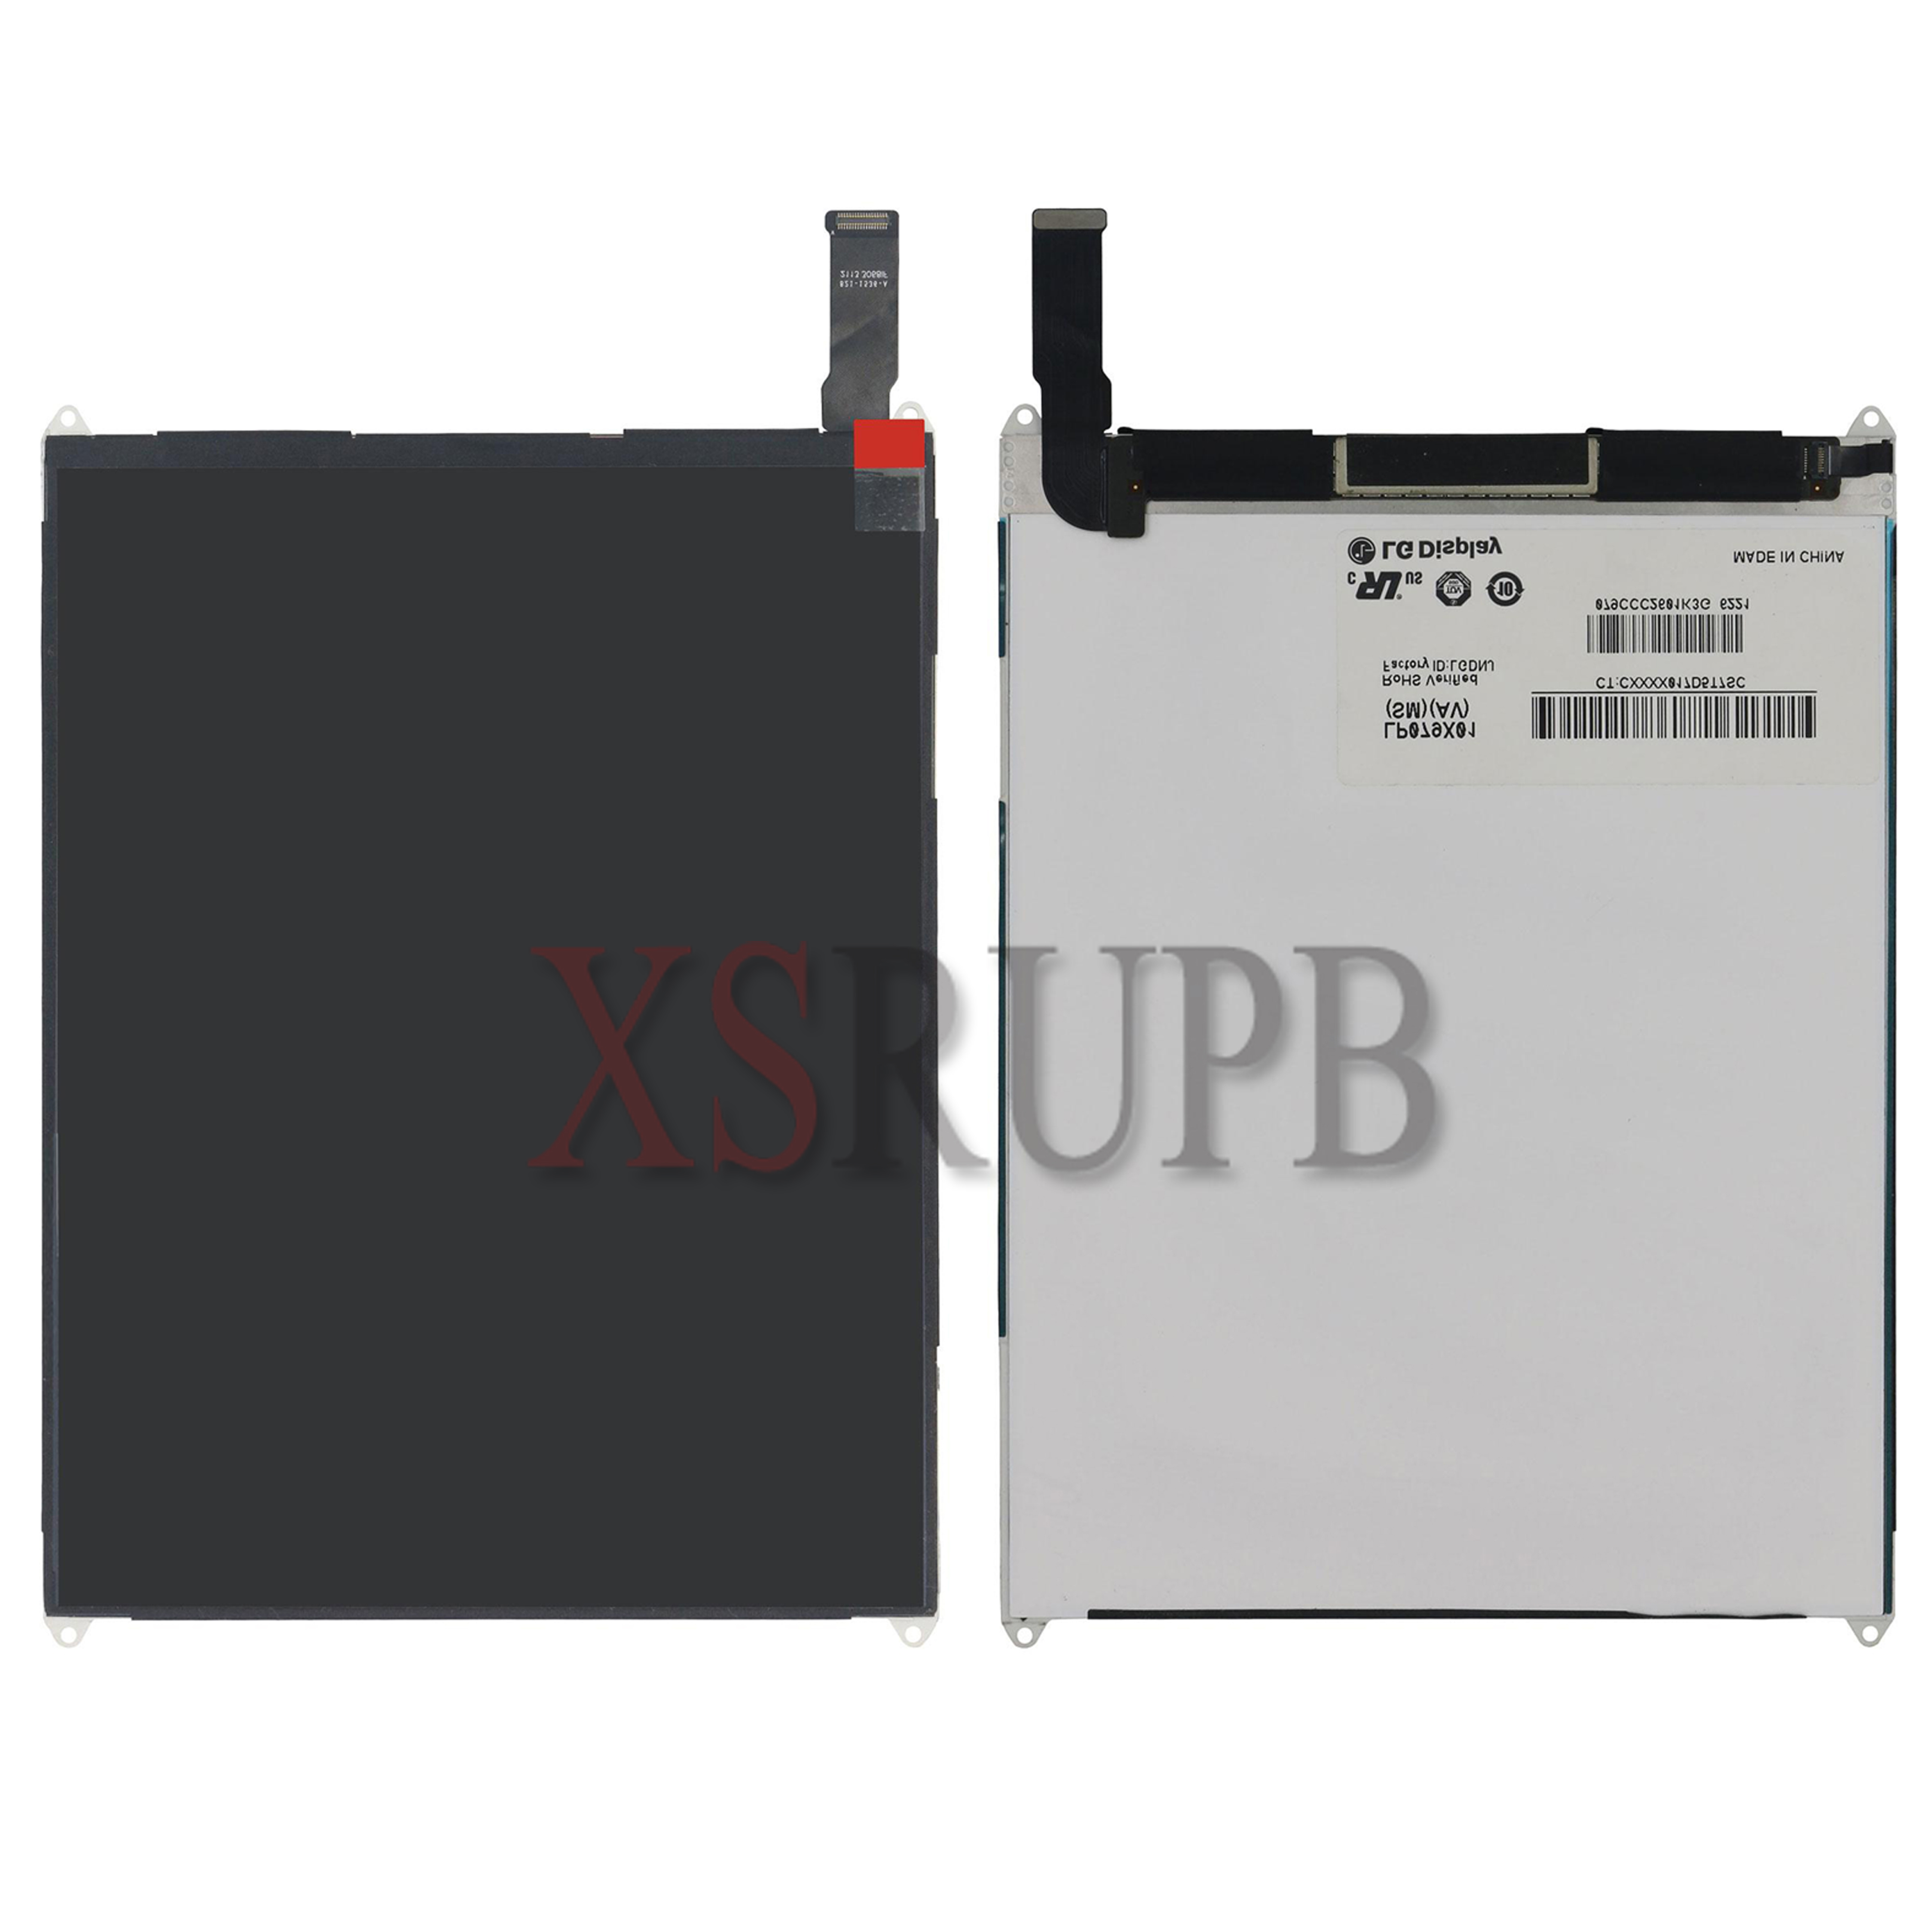 Original and New 7.9inch LCD screen For i pad mini LP079X01(SM)(AV) LP079X01-SMAV LP079X01 LCD Screen Free Shipping<br>